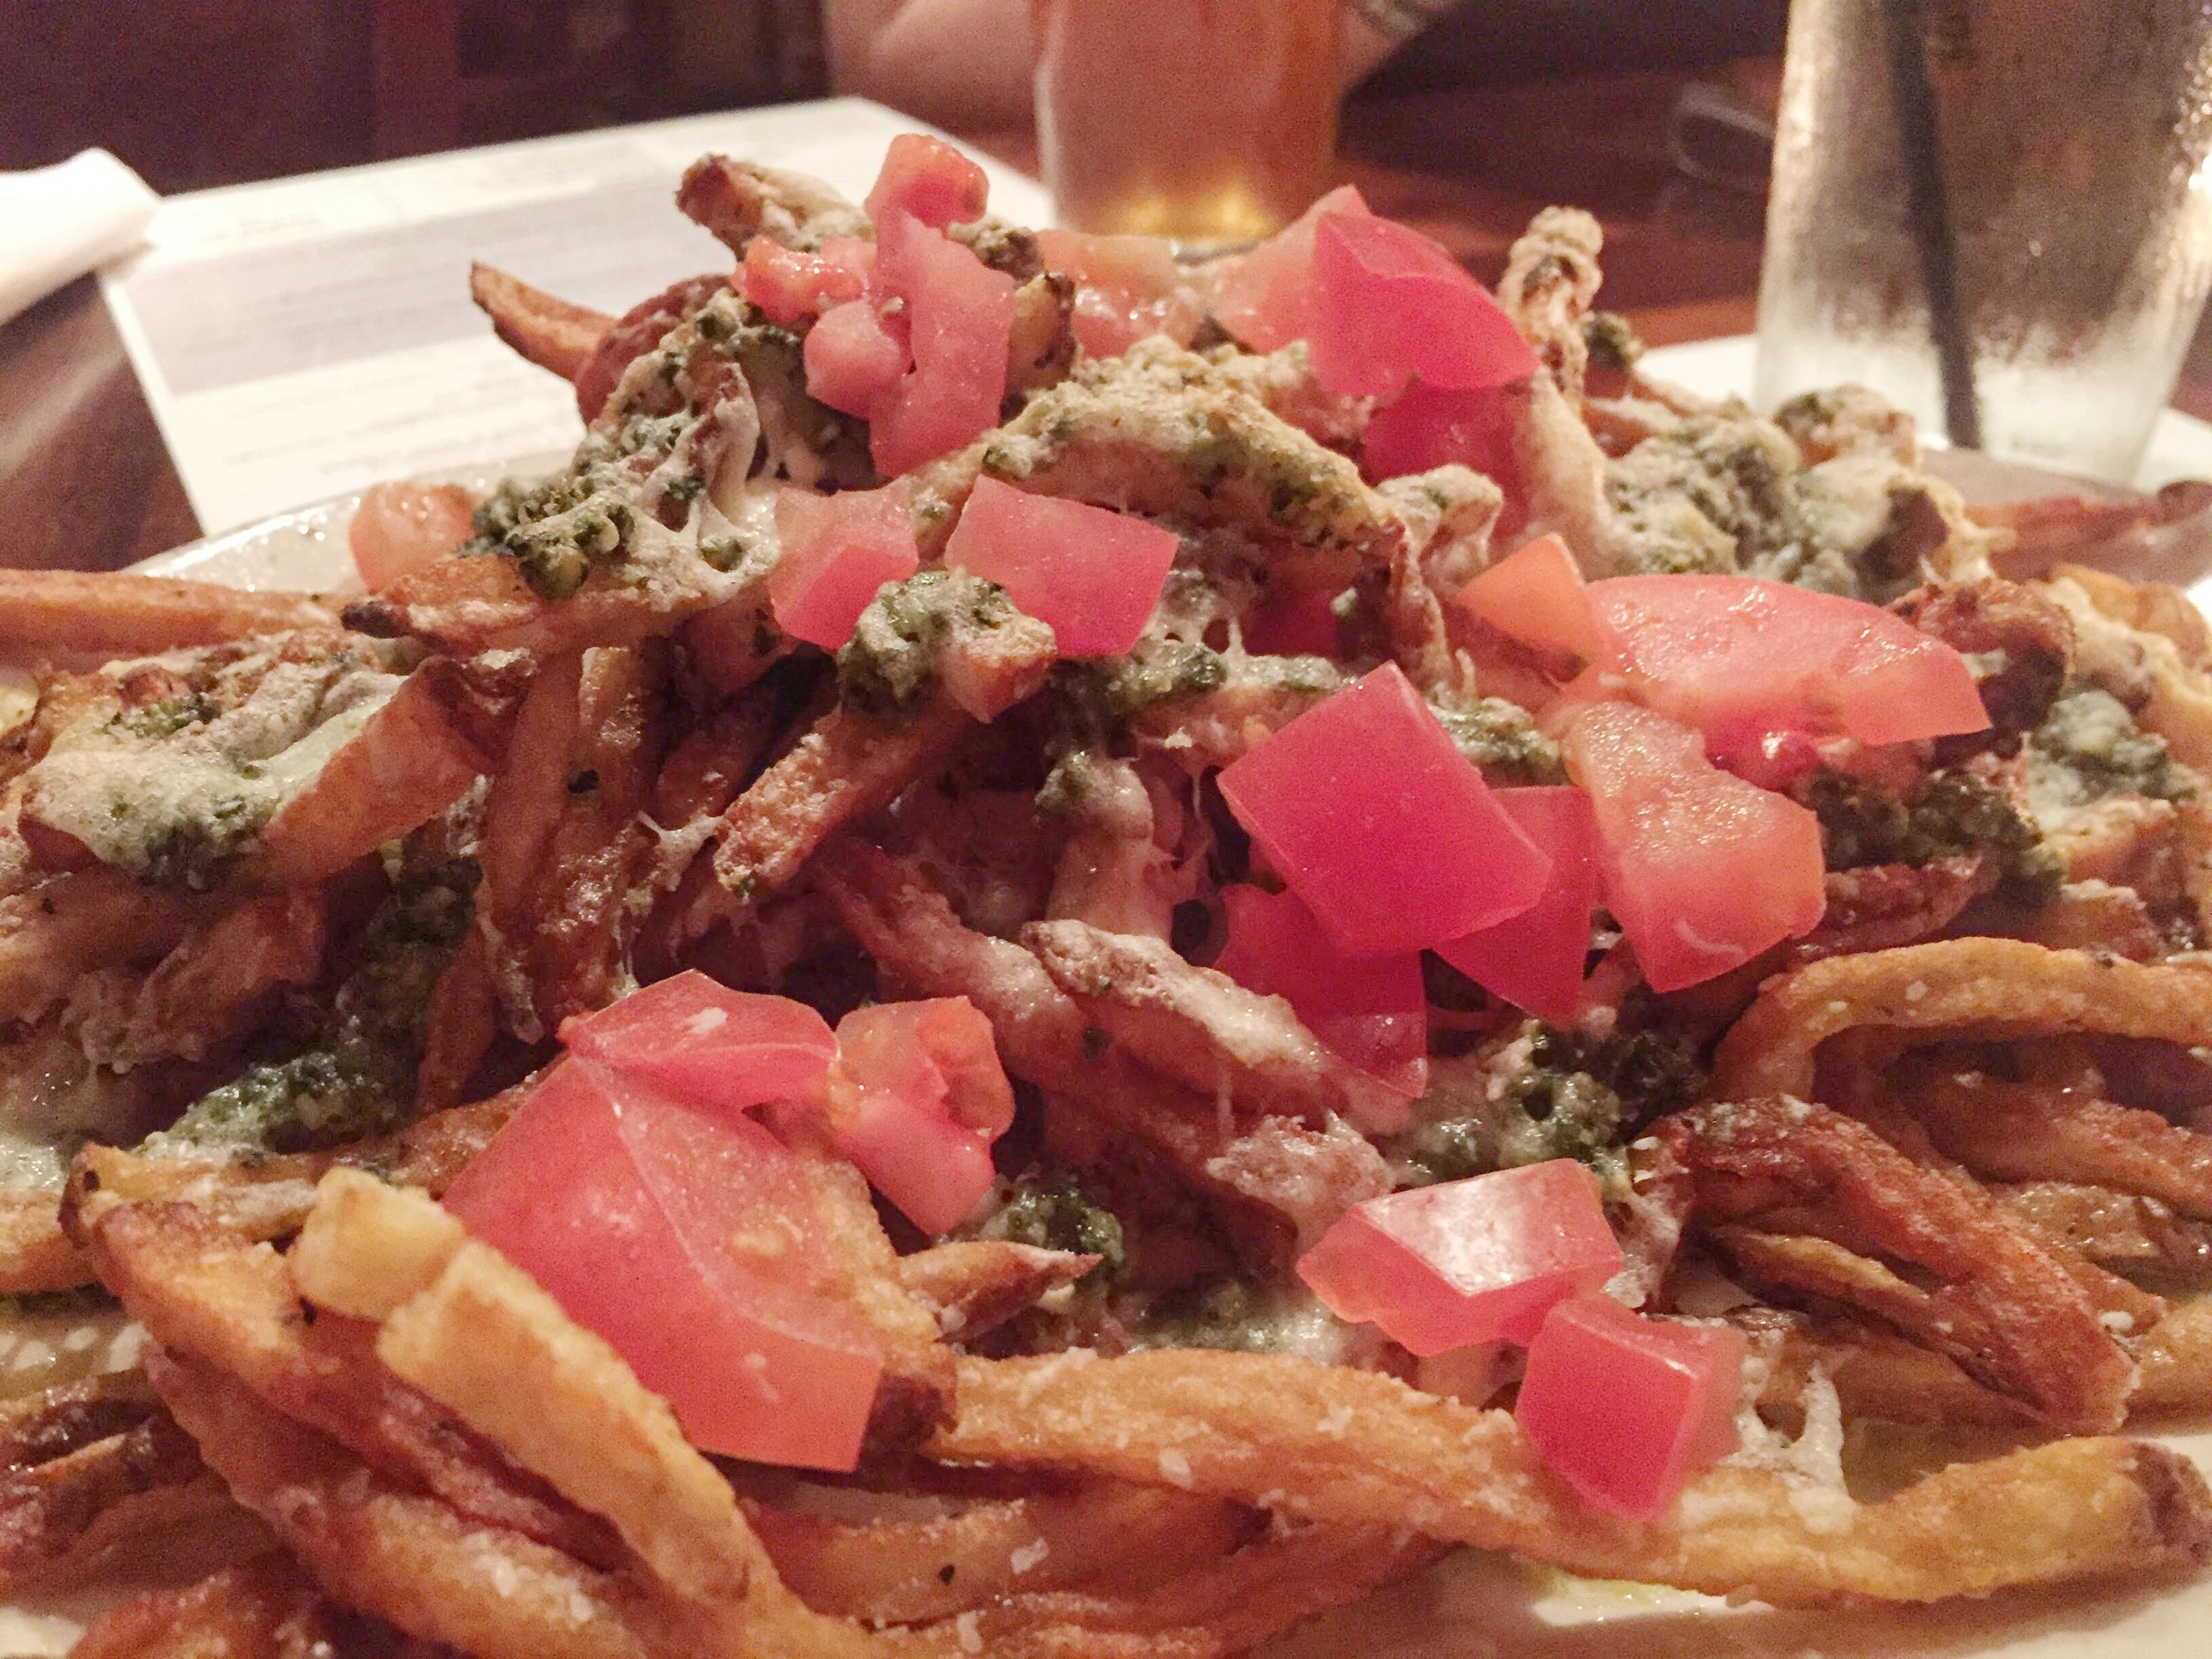 Pesto Brie Fries - hand-cut, twice-fried with pine nut basil pesto, melted brie, tomatoes